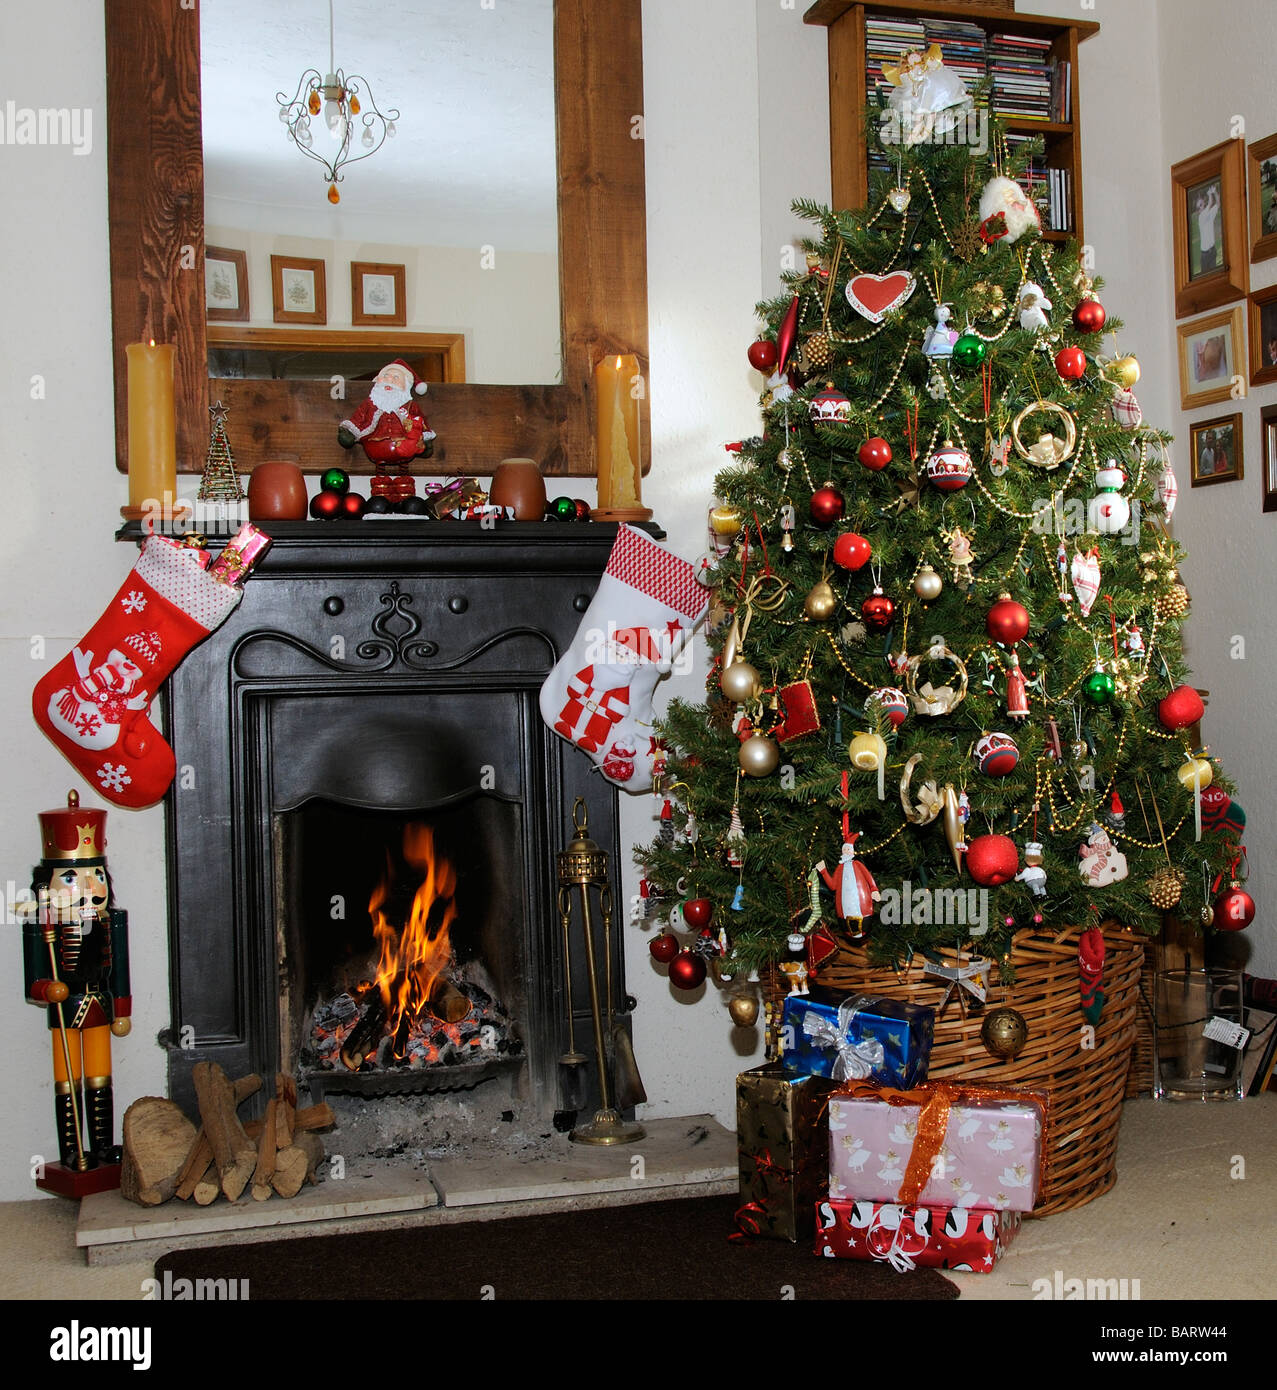 Real christmas trees with presents - Christmas Tree With Presents And Colourful Xmas Decorations Standing By An Open Fire